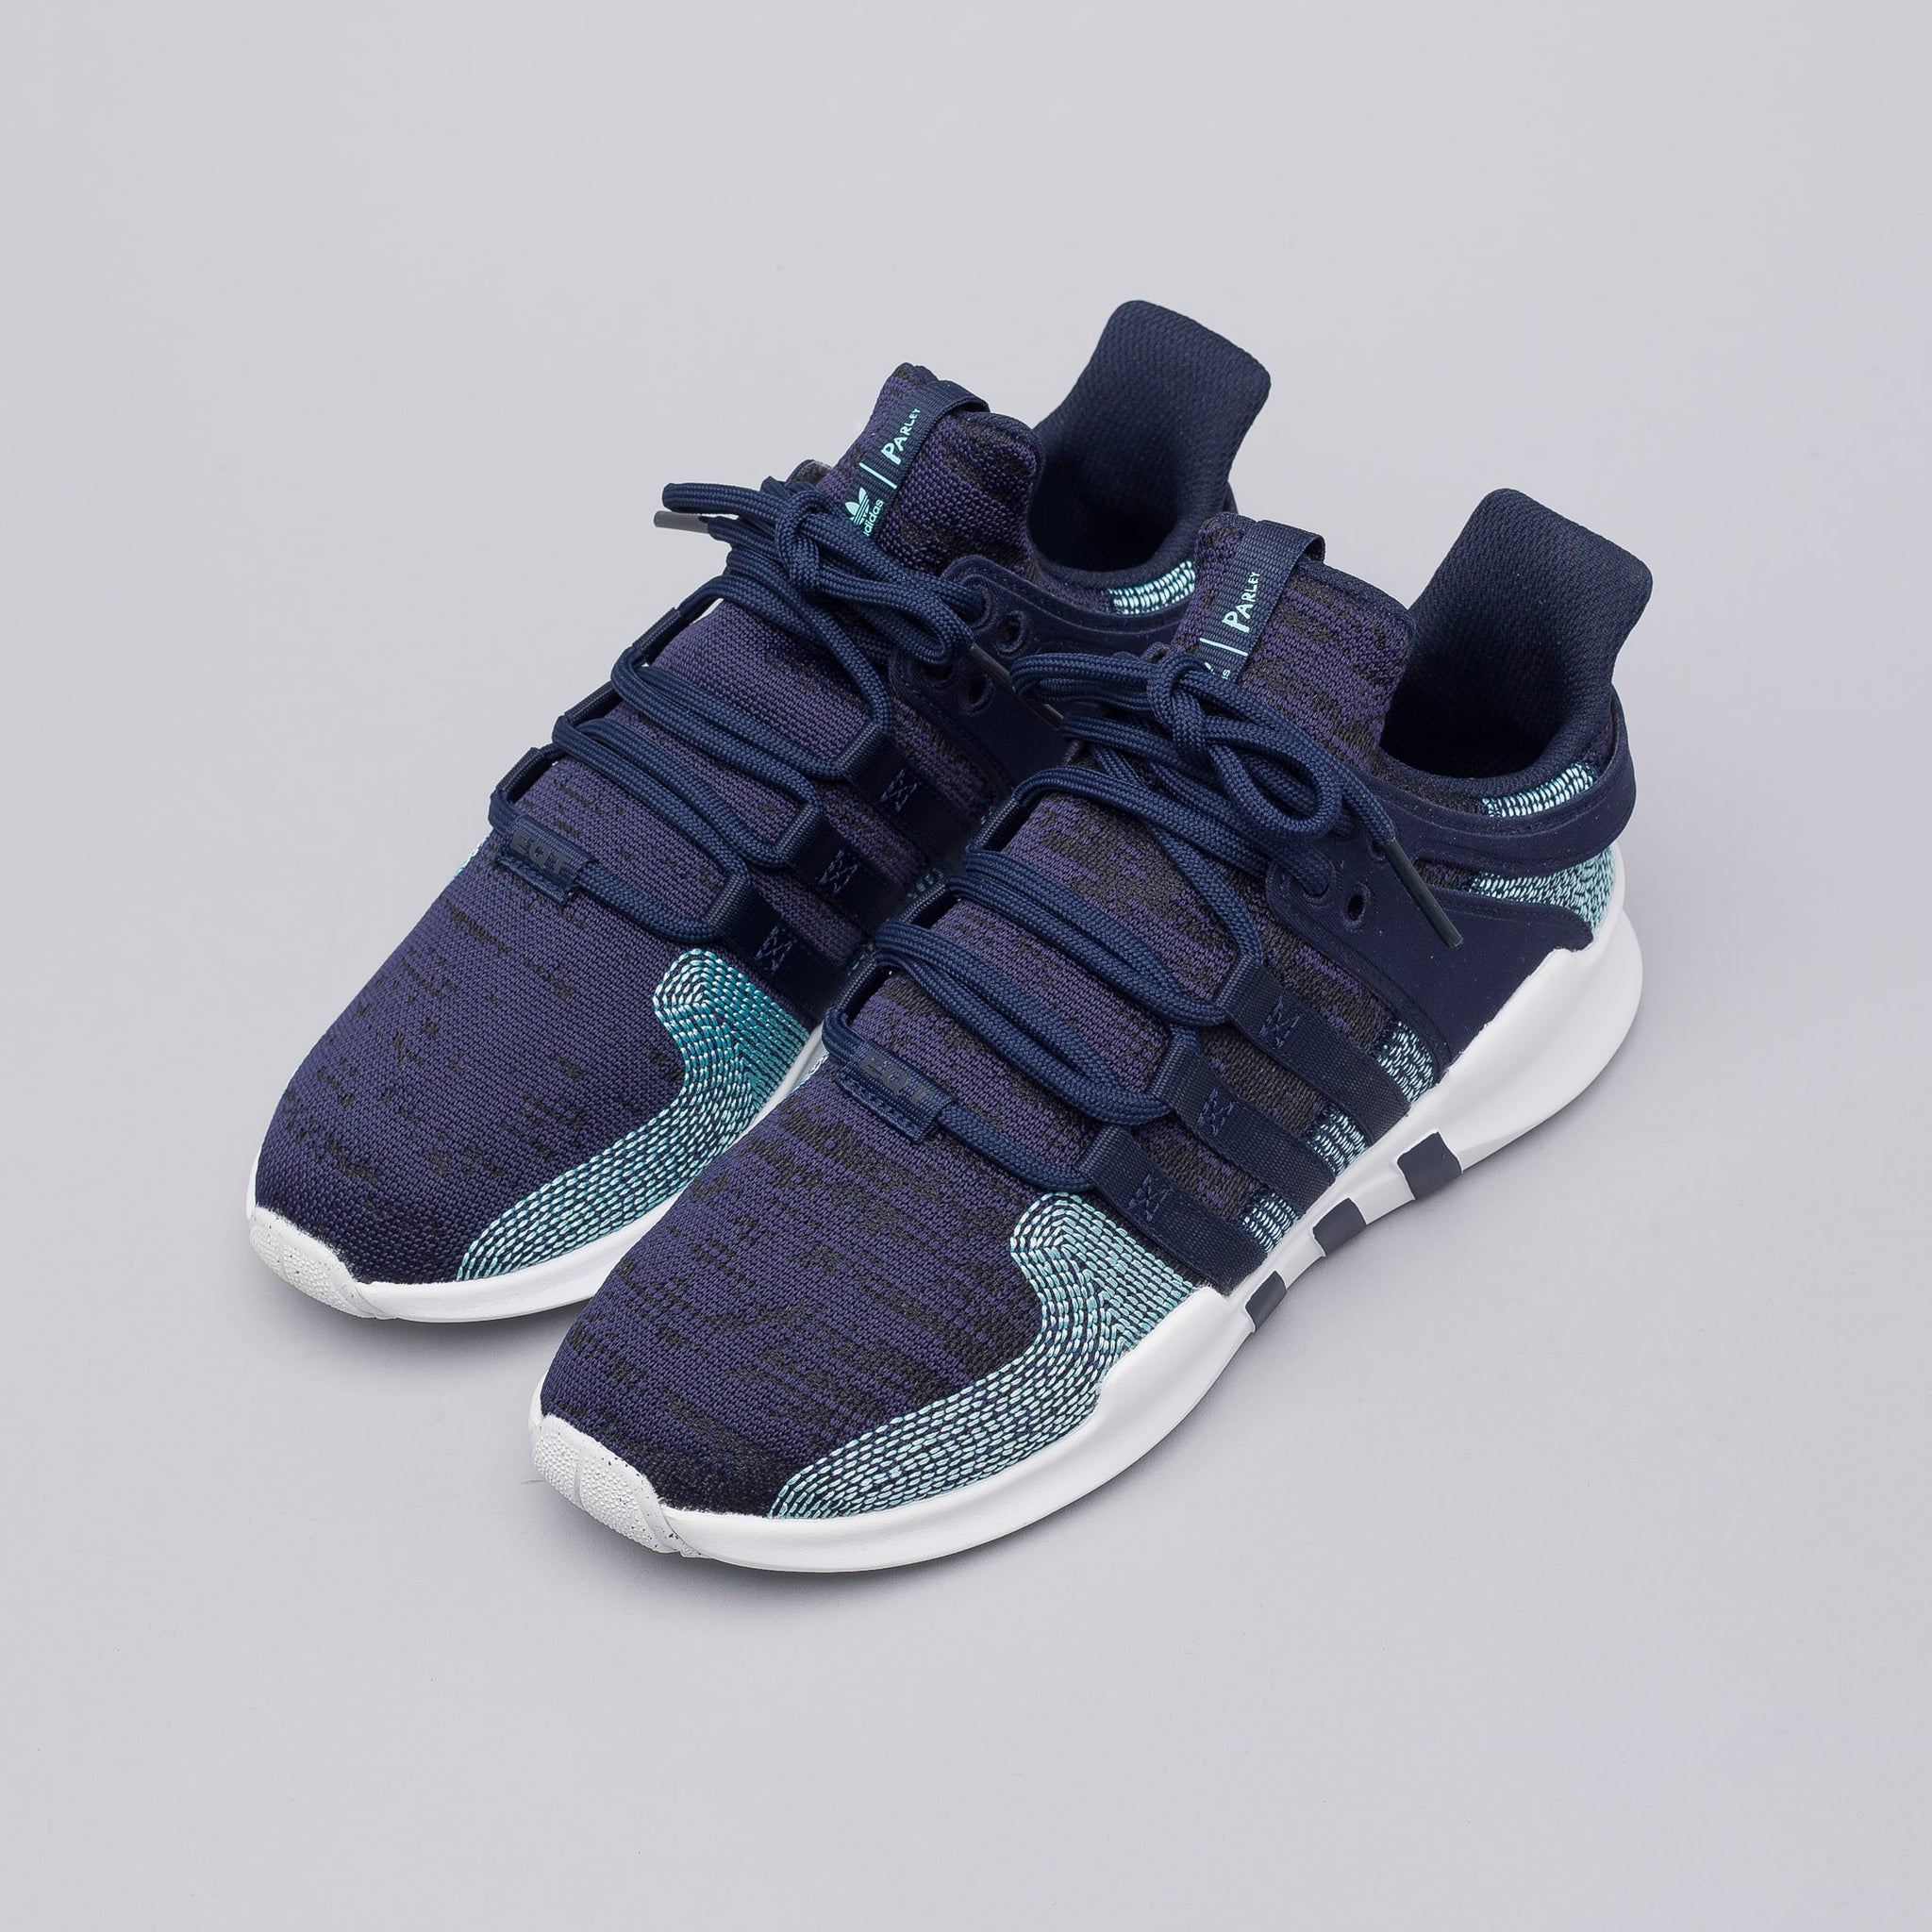 EQT Support ADV Parley in Legend Ink